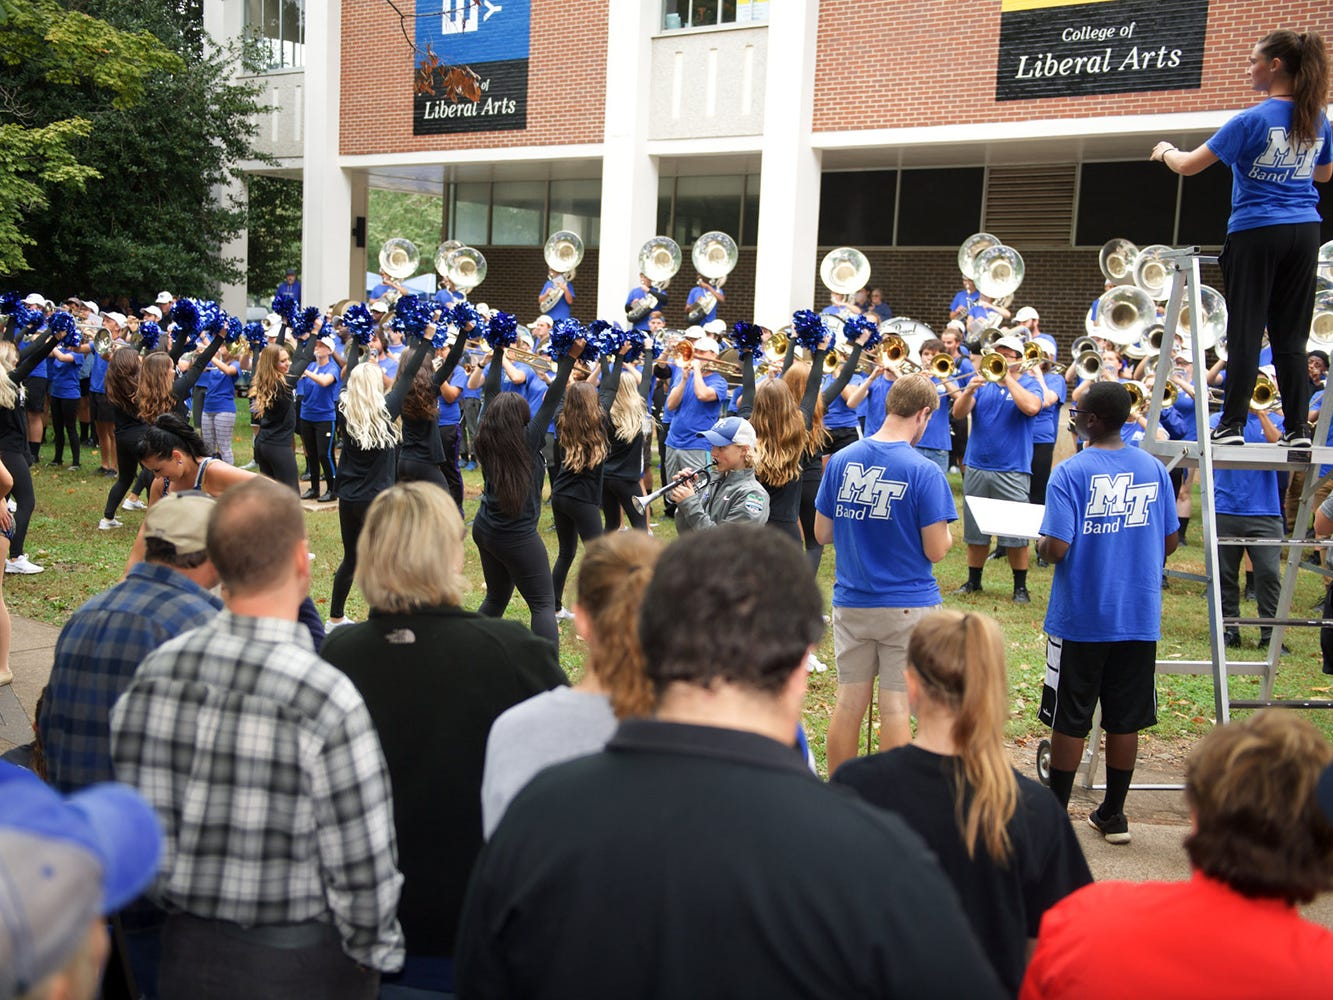 Tailgating in The Grove during MTSU's Homecoming celebration on Oct. 20, 2018.